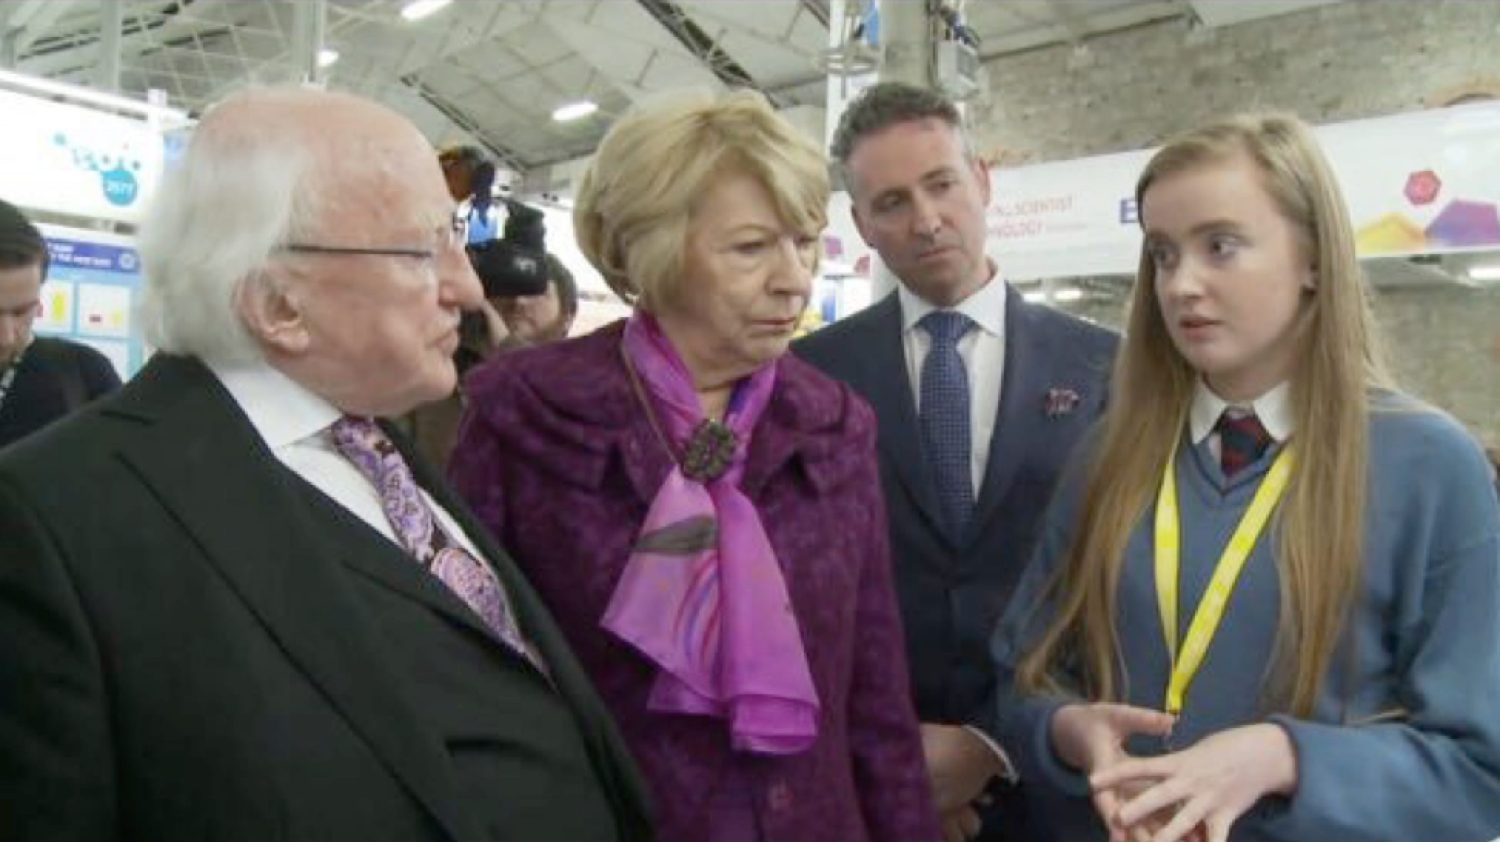 Jan 2016: Niamh Liston chatting to President Michael D Higgins and his wife Sabina about her project at the BT Young Scientist